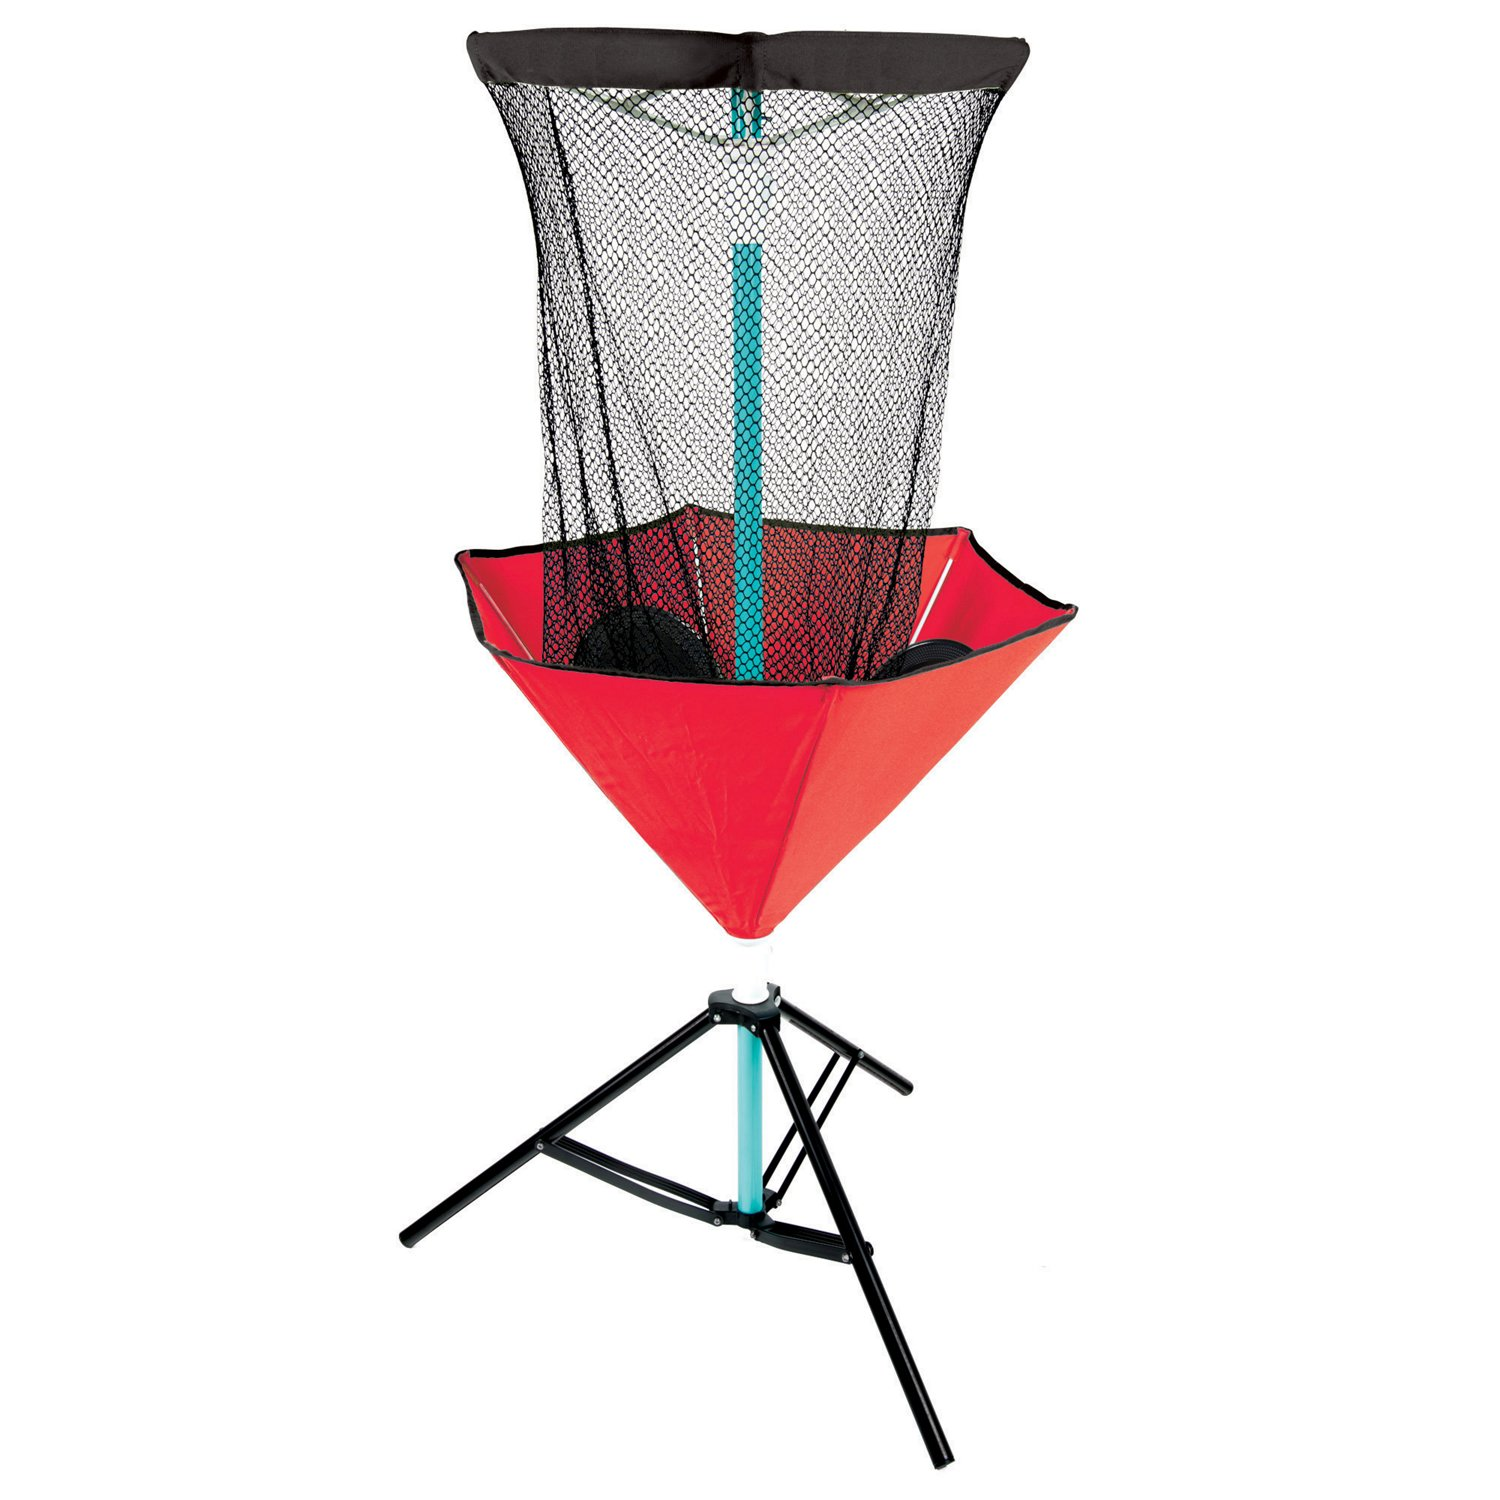 your zone flip chair target eddie bauer high replacement cover outdoor games academy disc golf